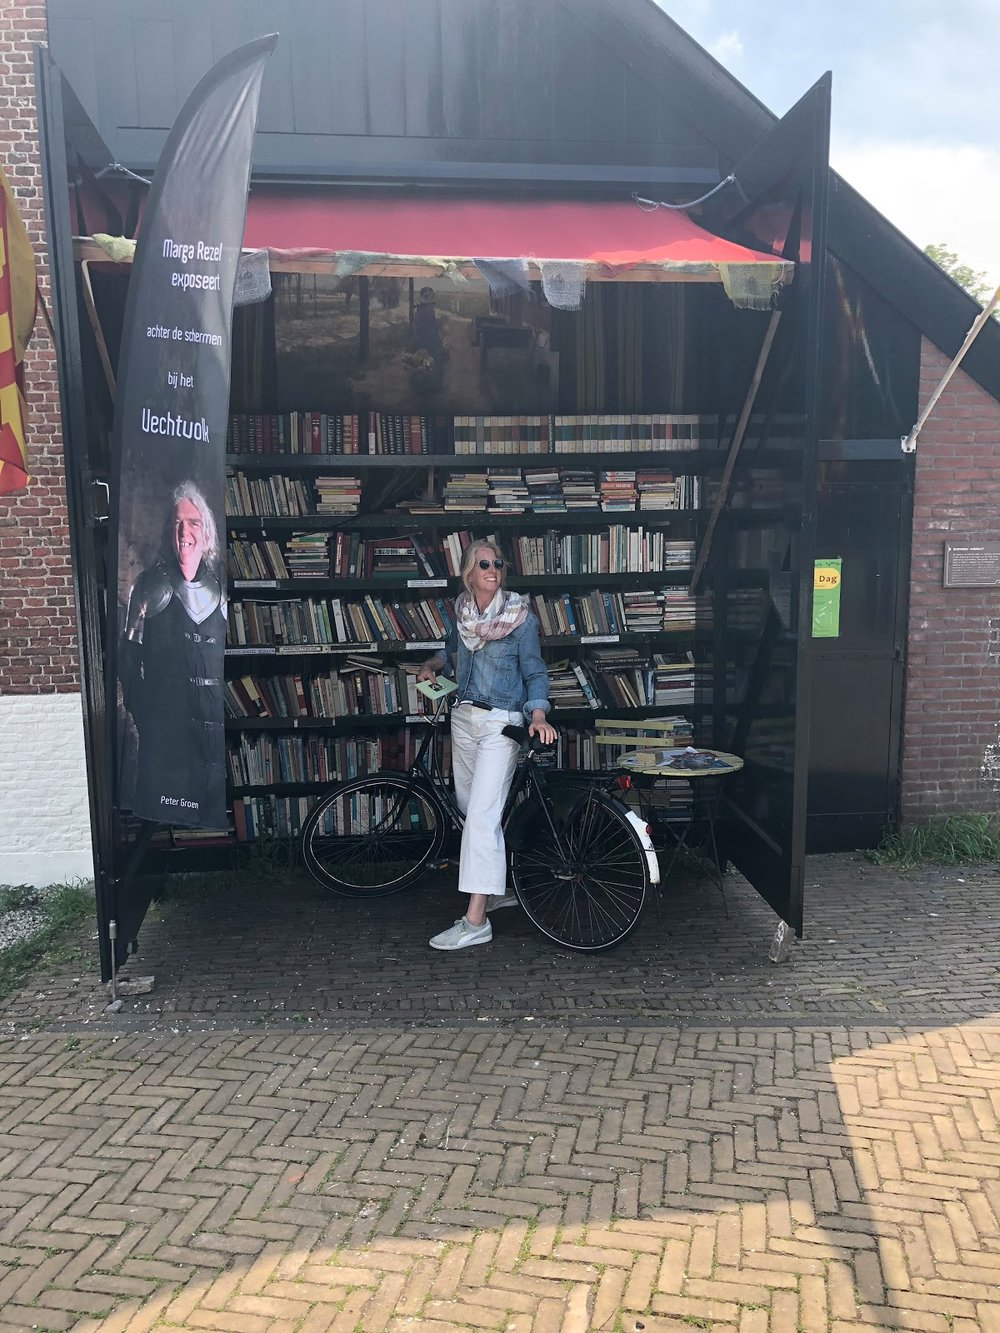 """Anne, enjoying a day off biking in Amsterdam. This bookstore sold its wares on the """"honor system,"""" asking patrons to choose their books and leave their money without a shopkeeper to oversee it."""